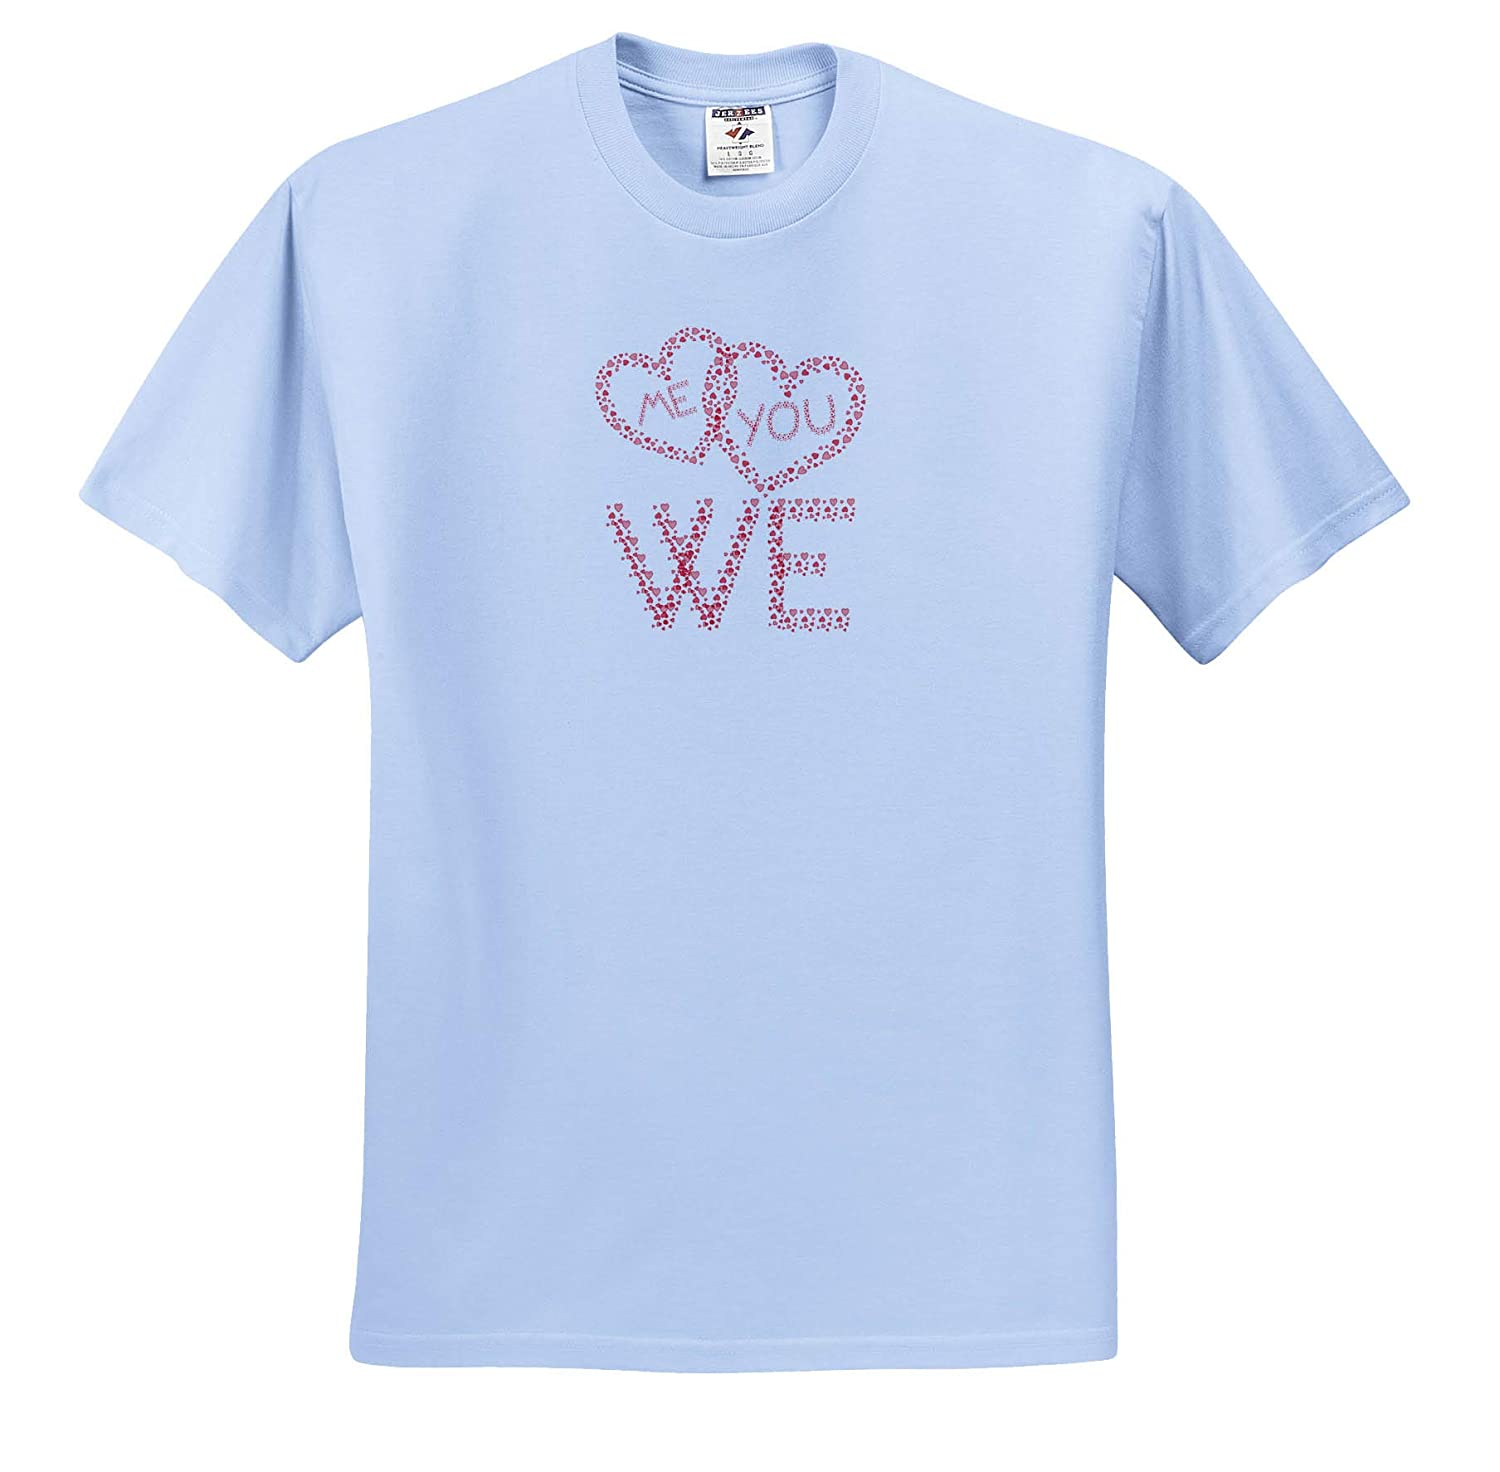 You Text Me Two Hearts We T-Shirts 3dRose Alexis Design Holidays Valentines Day Pink Heart Design